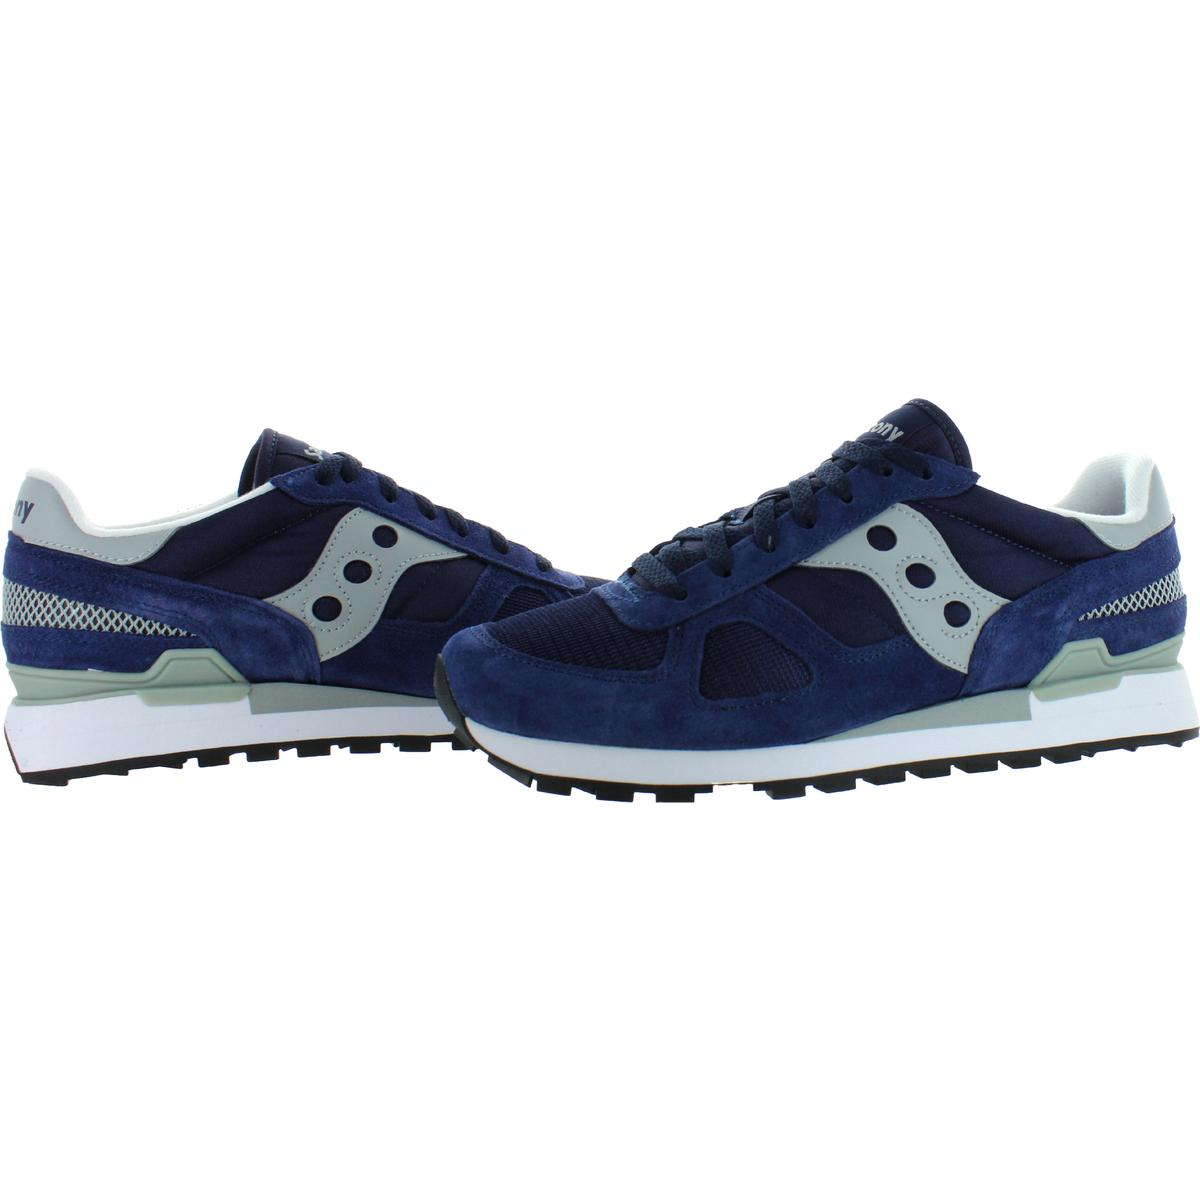 Saucony-Mens-Shadow-Original-Trainers-Suede-Comfort-Sneakers-Shoes-BHFO-0431 miniatuur 25